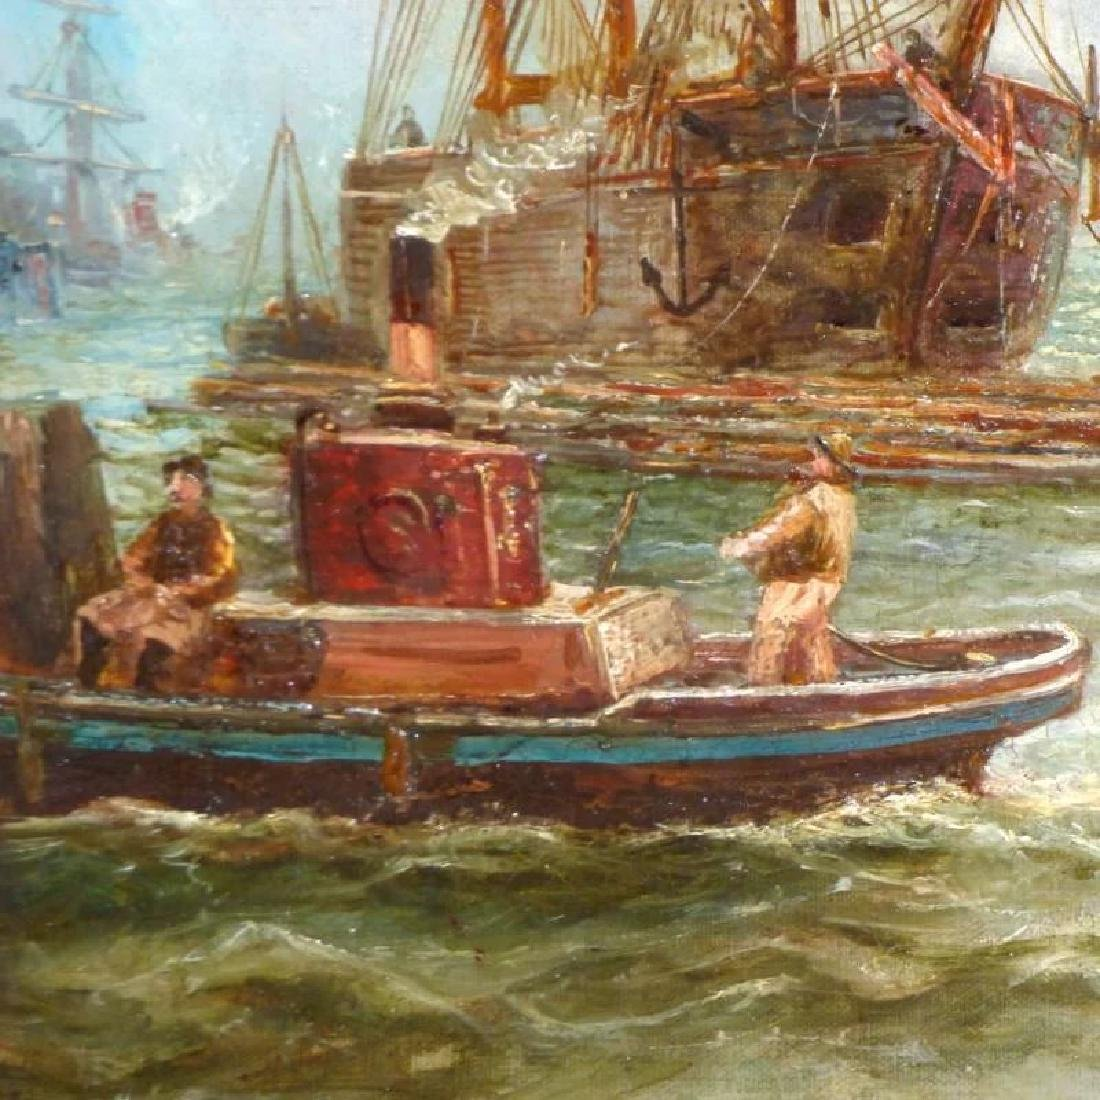 Antique Shipping Scene on the Tyne River, by Bernard B. - 4